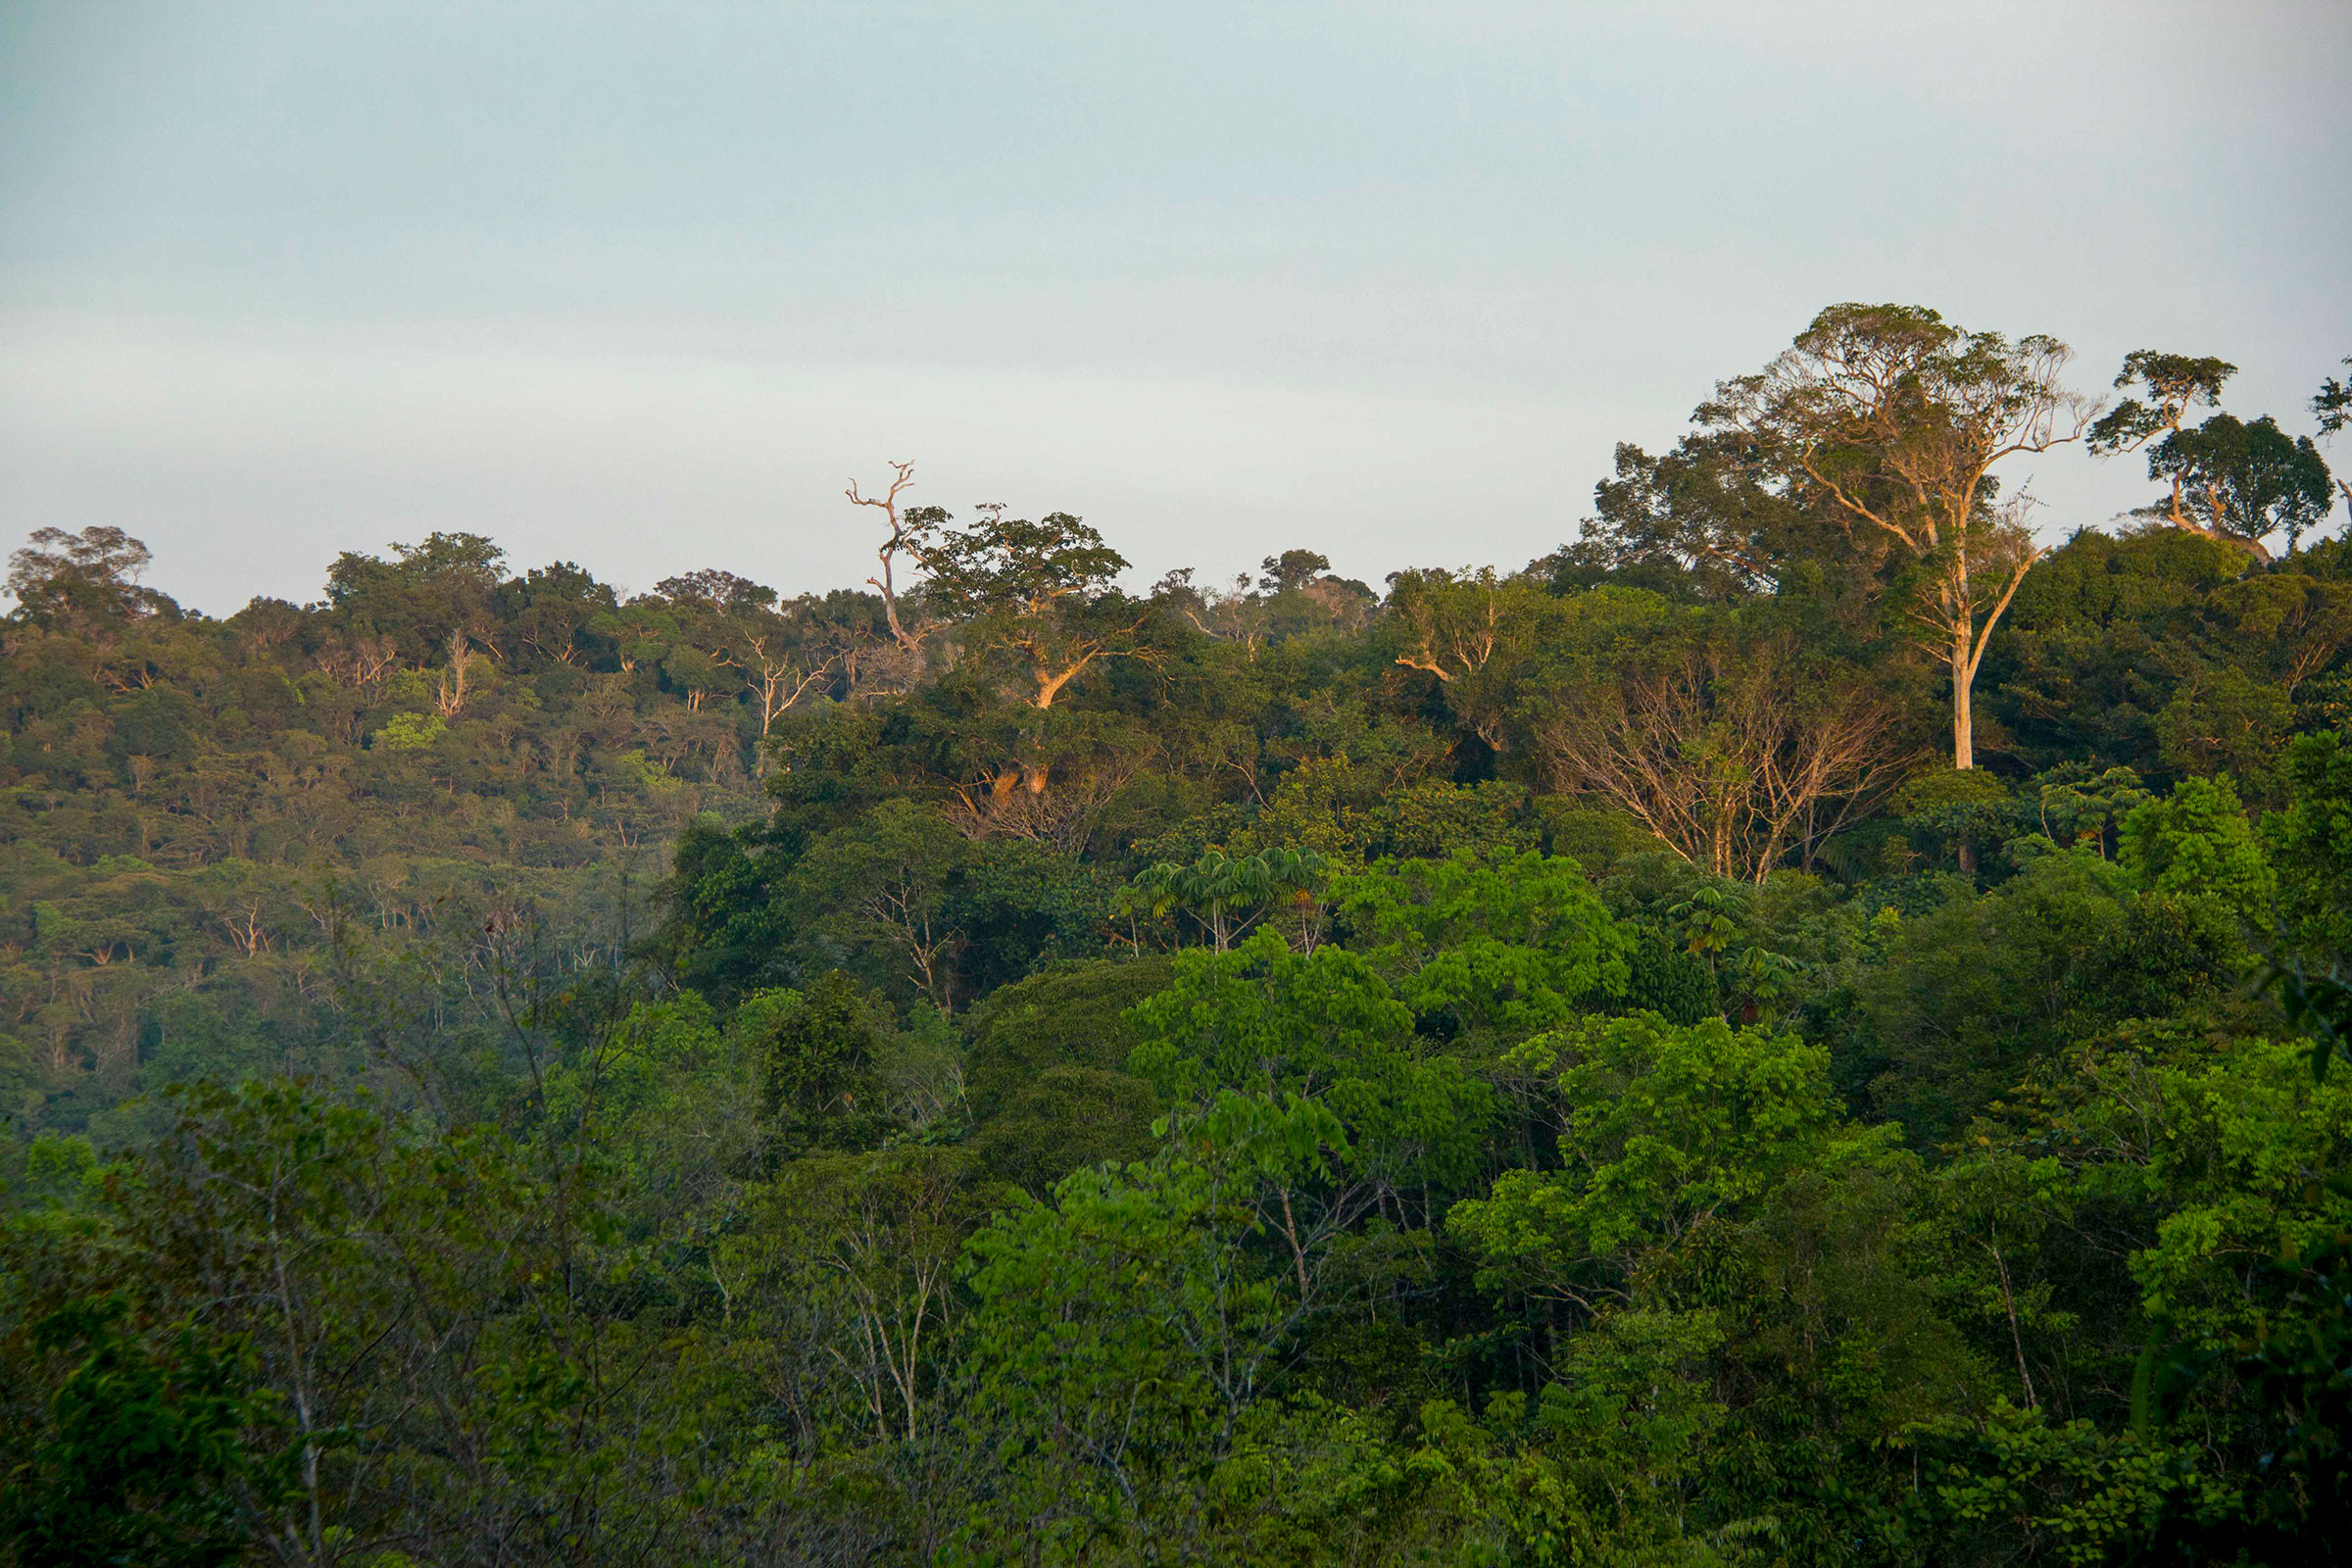 The Biological Dynamics of Forest Fragments Project area extends across a 37,000-acre portion of the Amazon rainforest in Brazil.